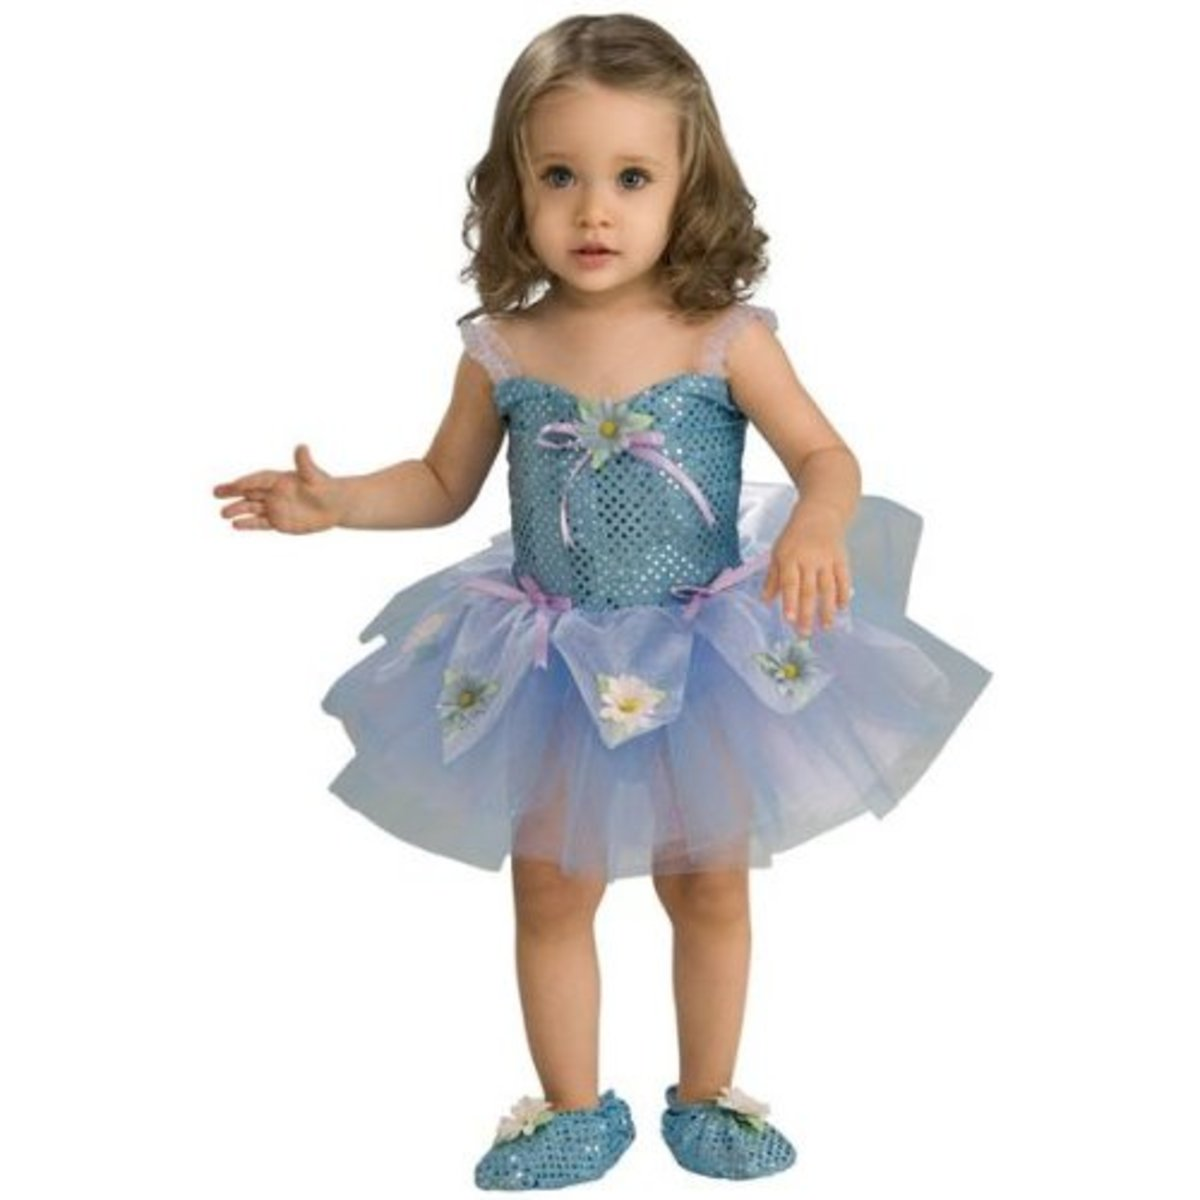 This toddler daisy costume shows how you can easily transform a garden-variety tutu into a gorgeous flower! Photo from Amazon.com